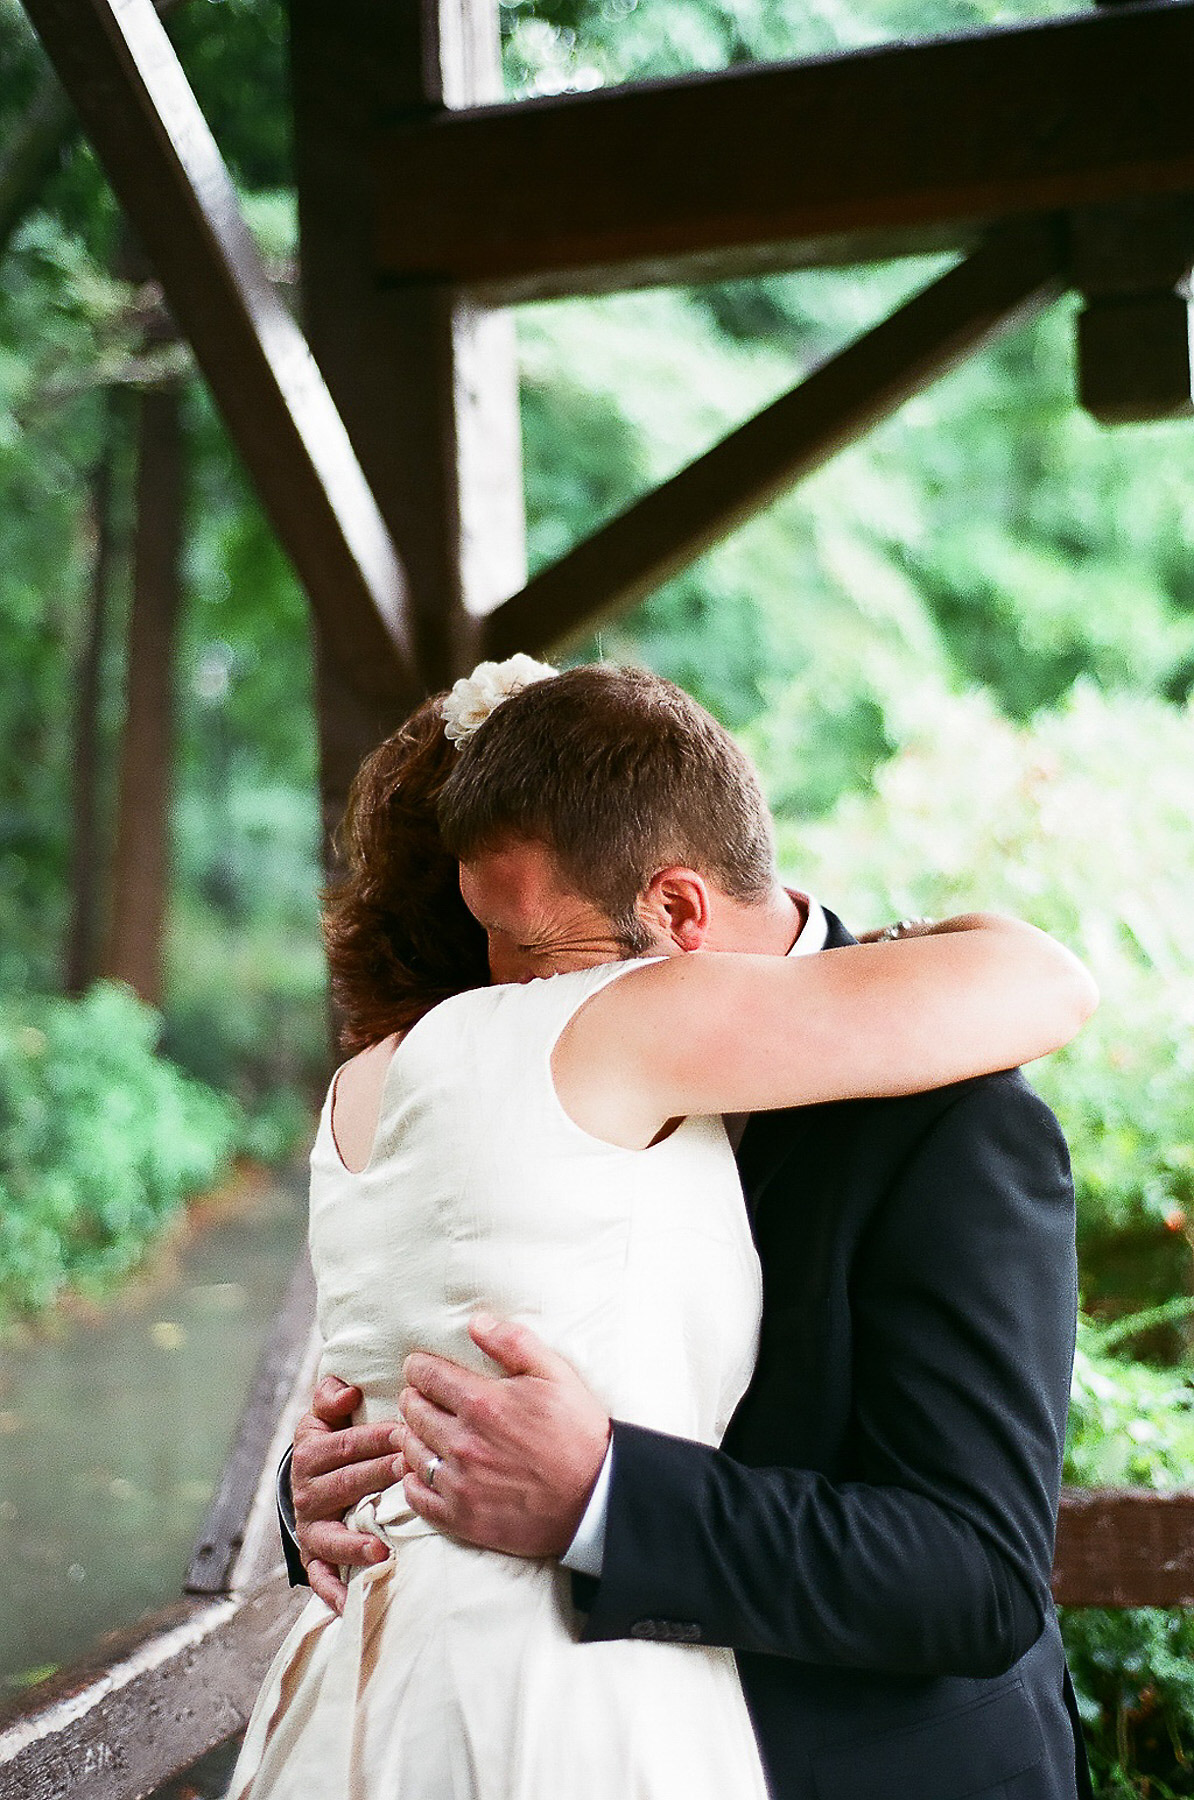 wedding elopement photos in Central park by wendy g photography